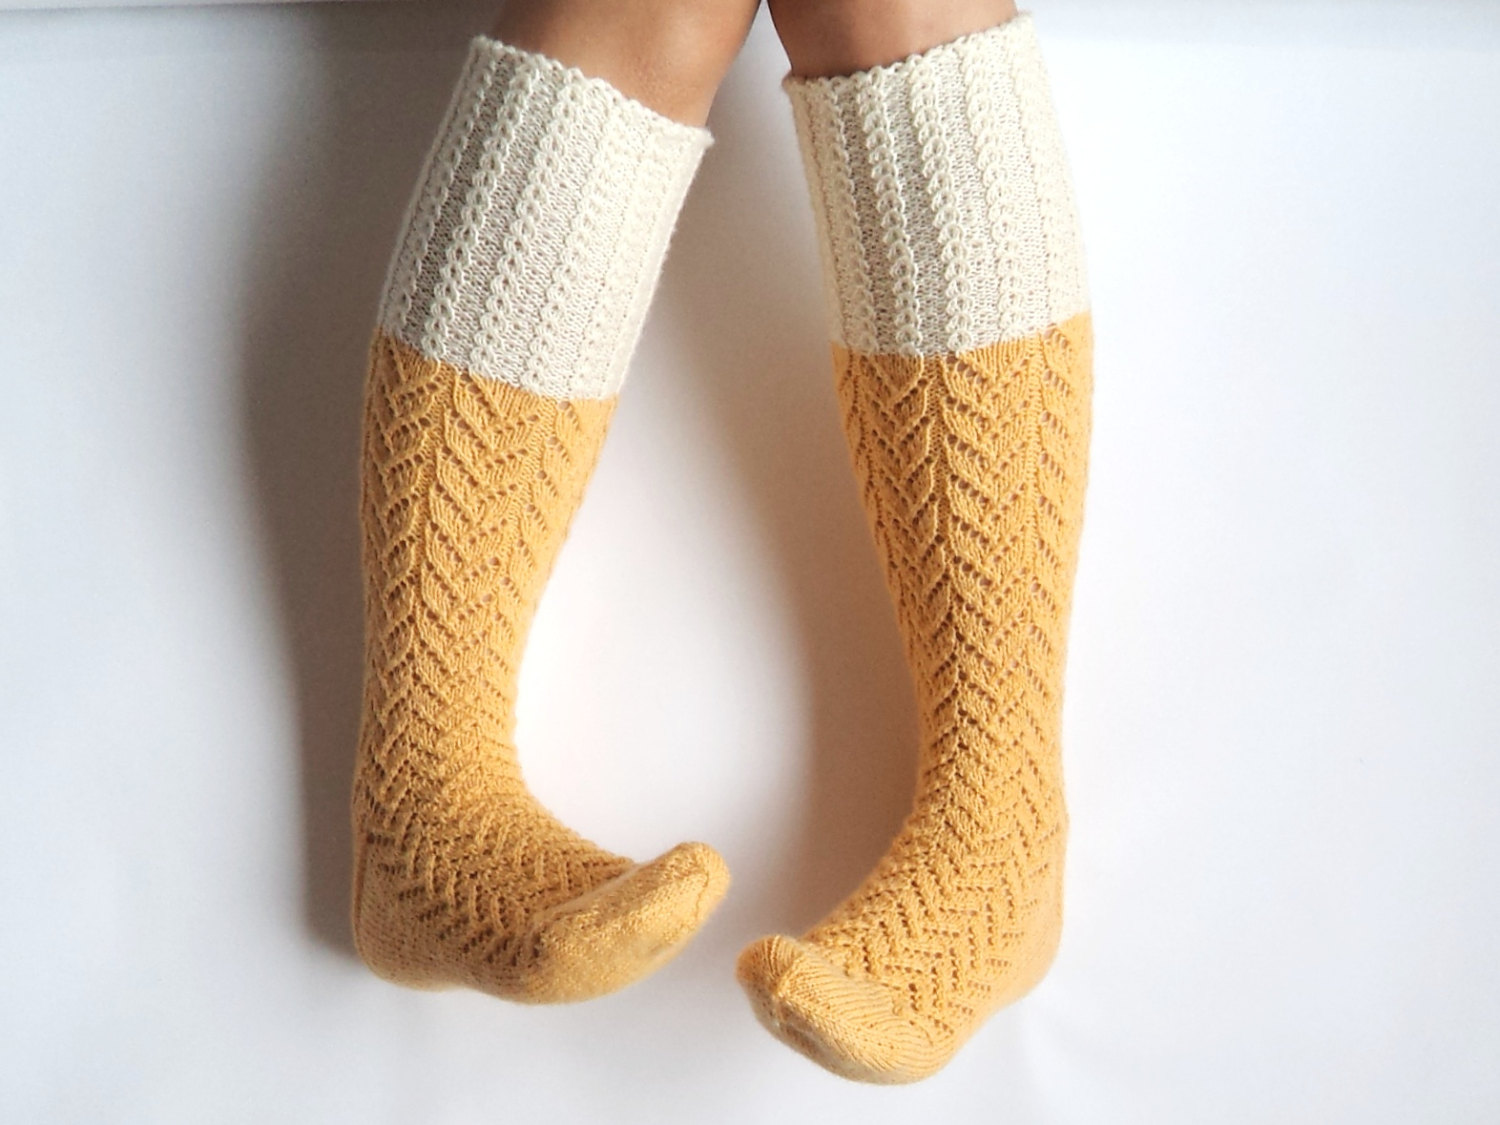 30 creative crochet sock patterns patterns hub free online crochet sock patterns bankloansurffo Gallery